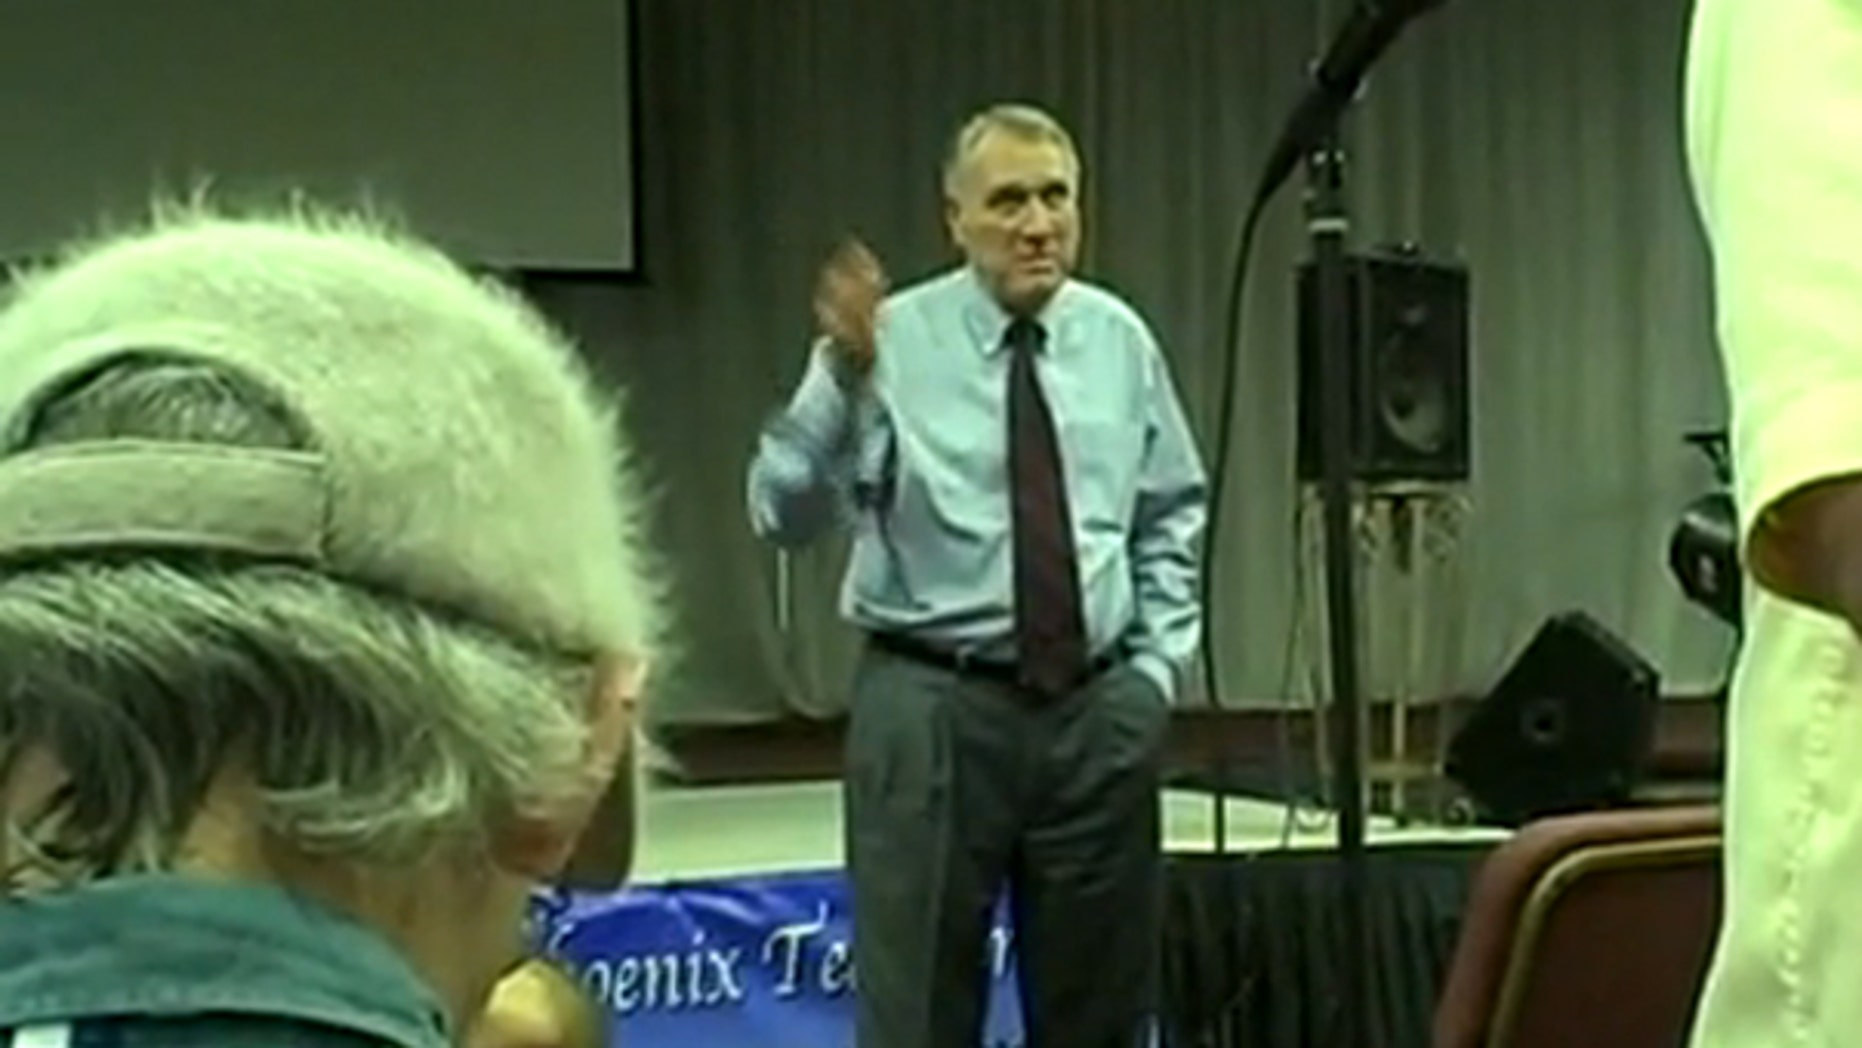 Sen. Jon Kyl is shown at a June 18 town hall meeting in Arizona. (YouTube)